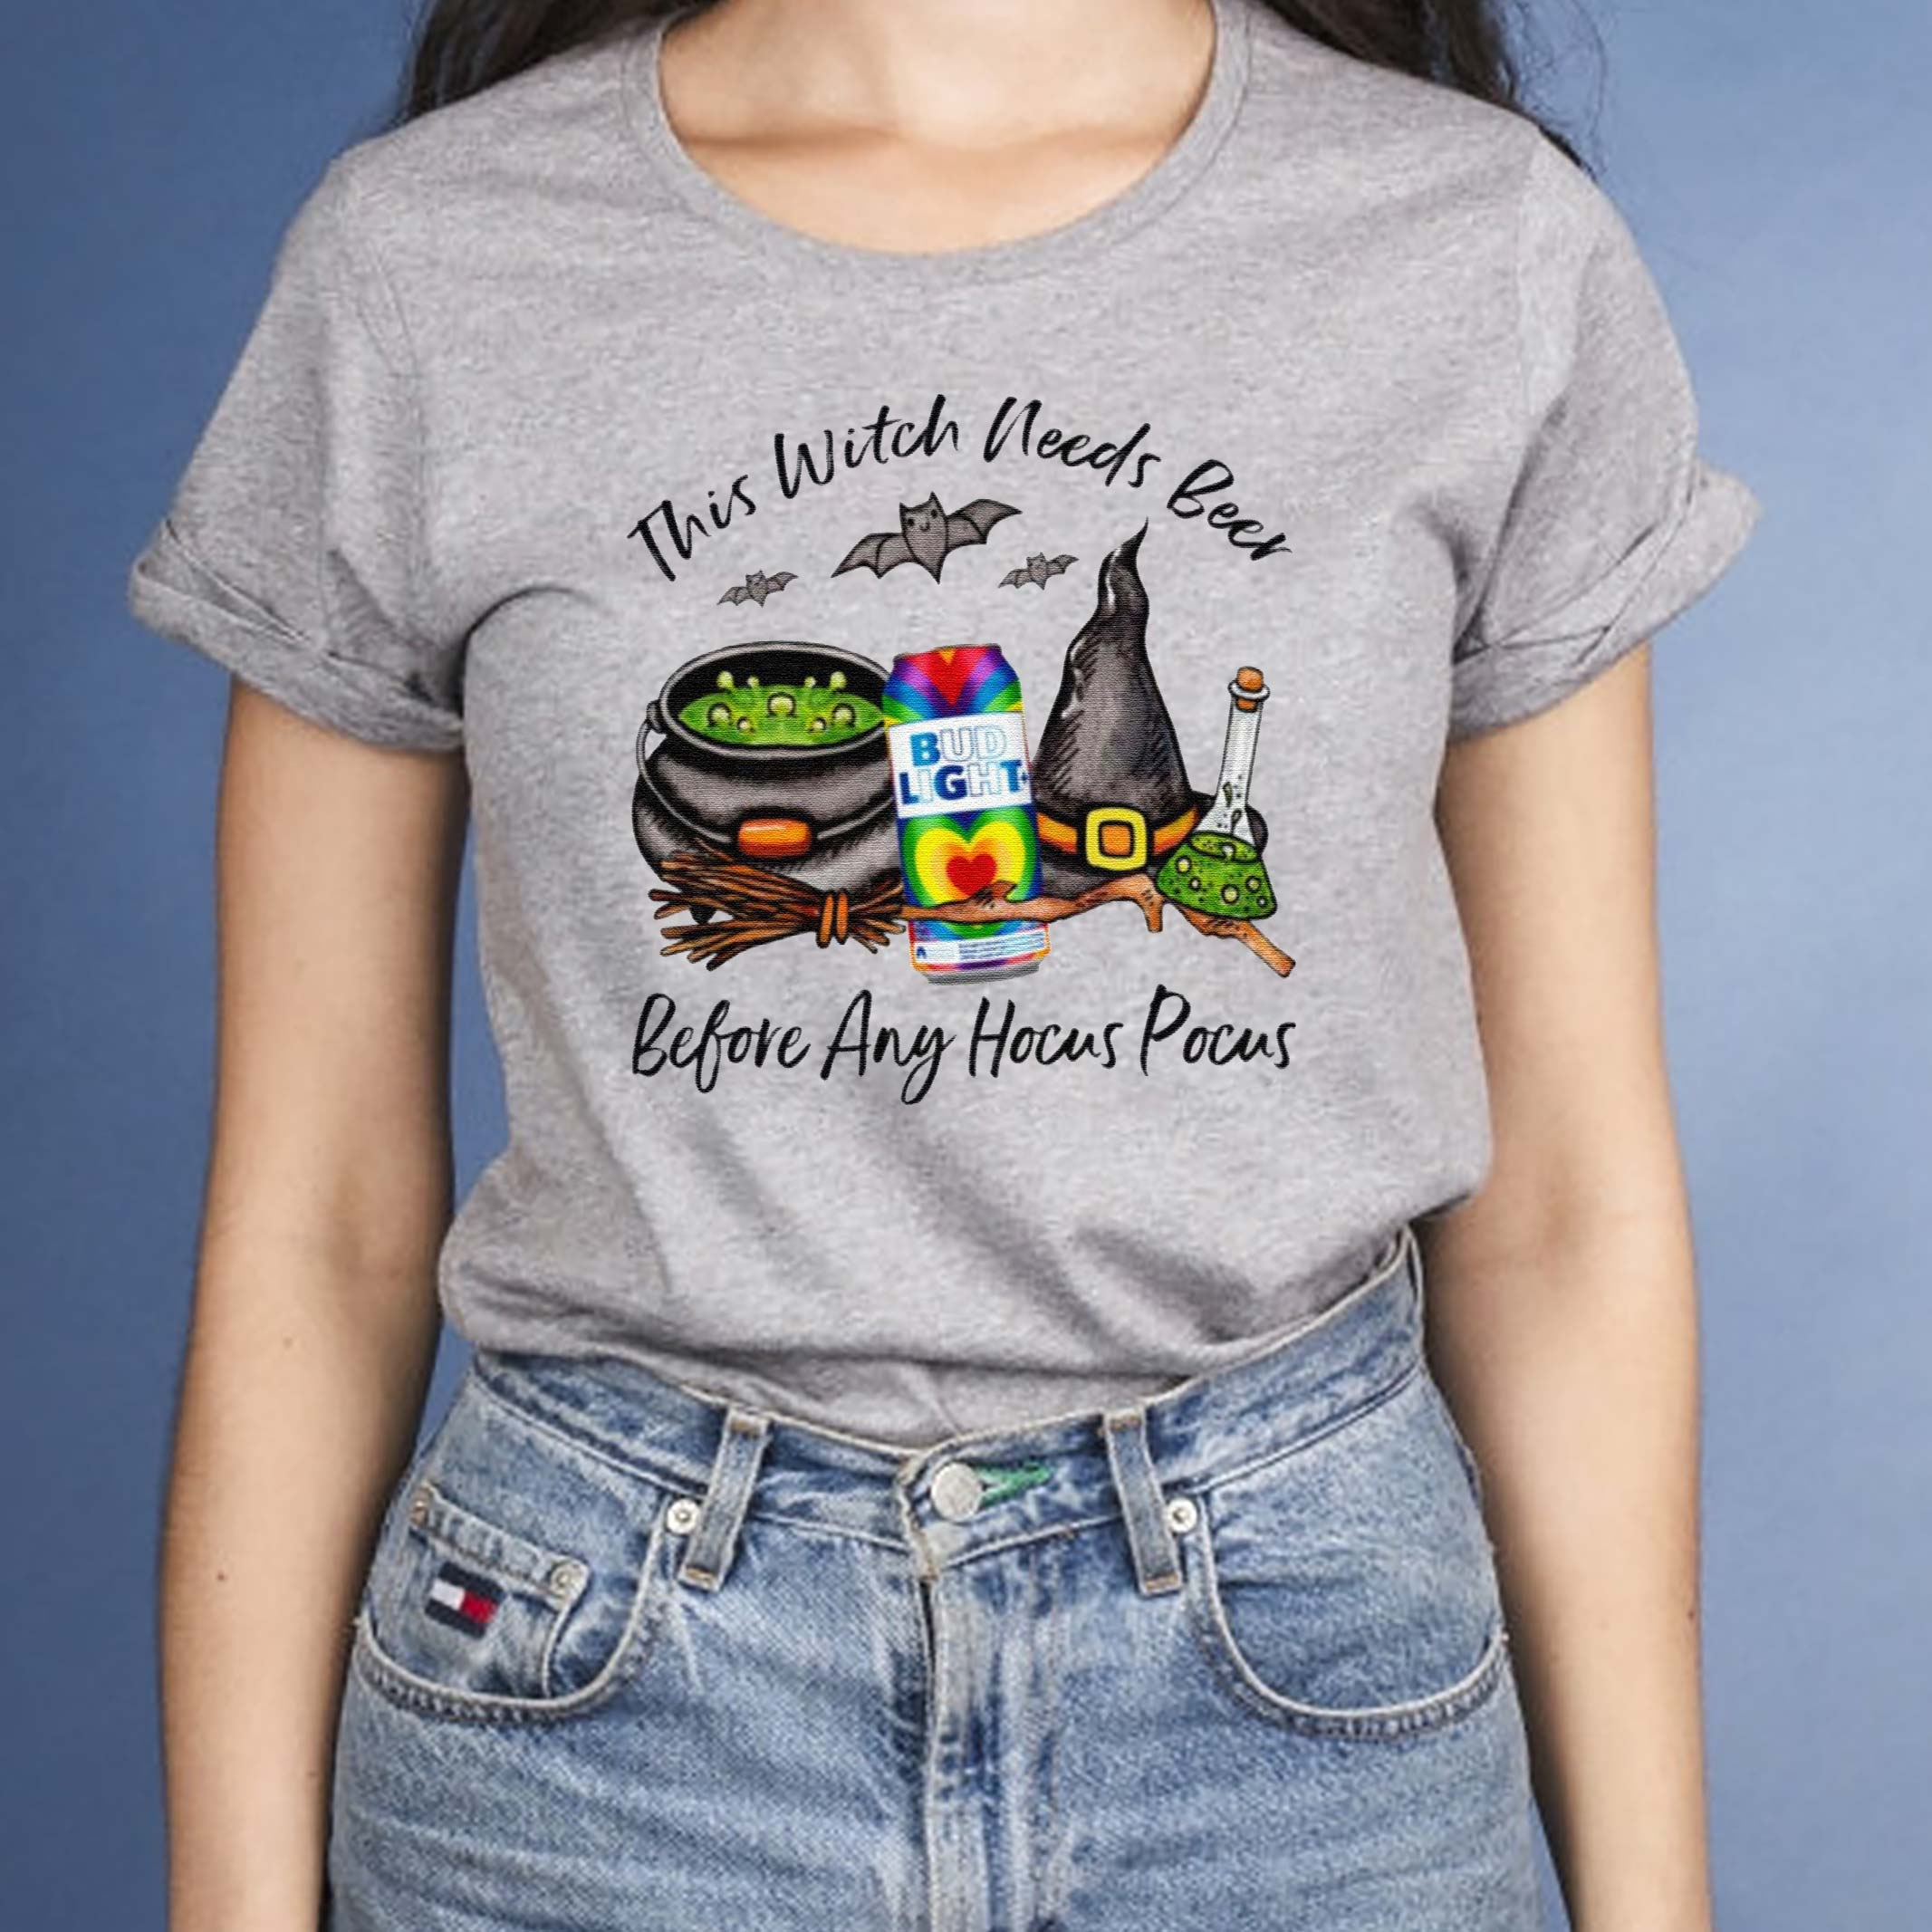 Bud-Light-Rock-Summer-Love-Ale-Can-This-Witch-Needs-Beer-Before-Any-Hocus-Pocus-T-Shirts